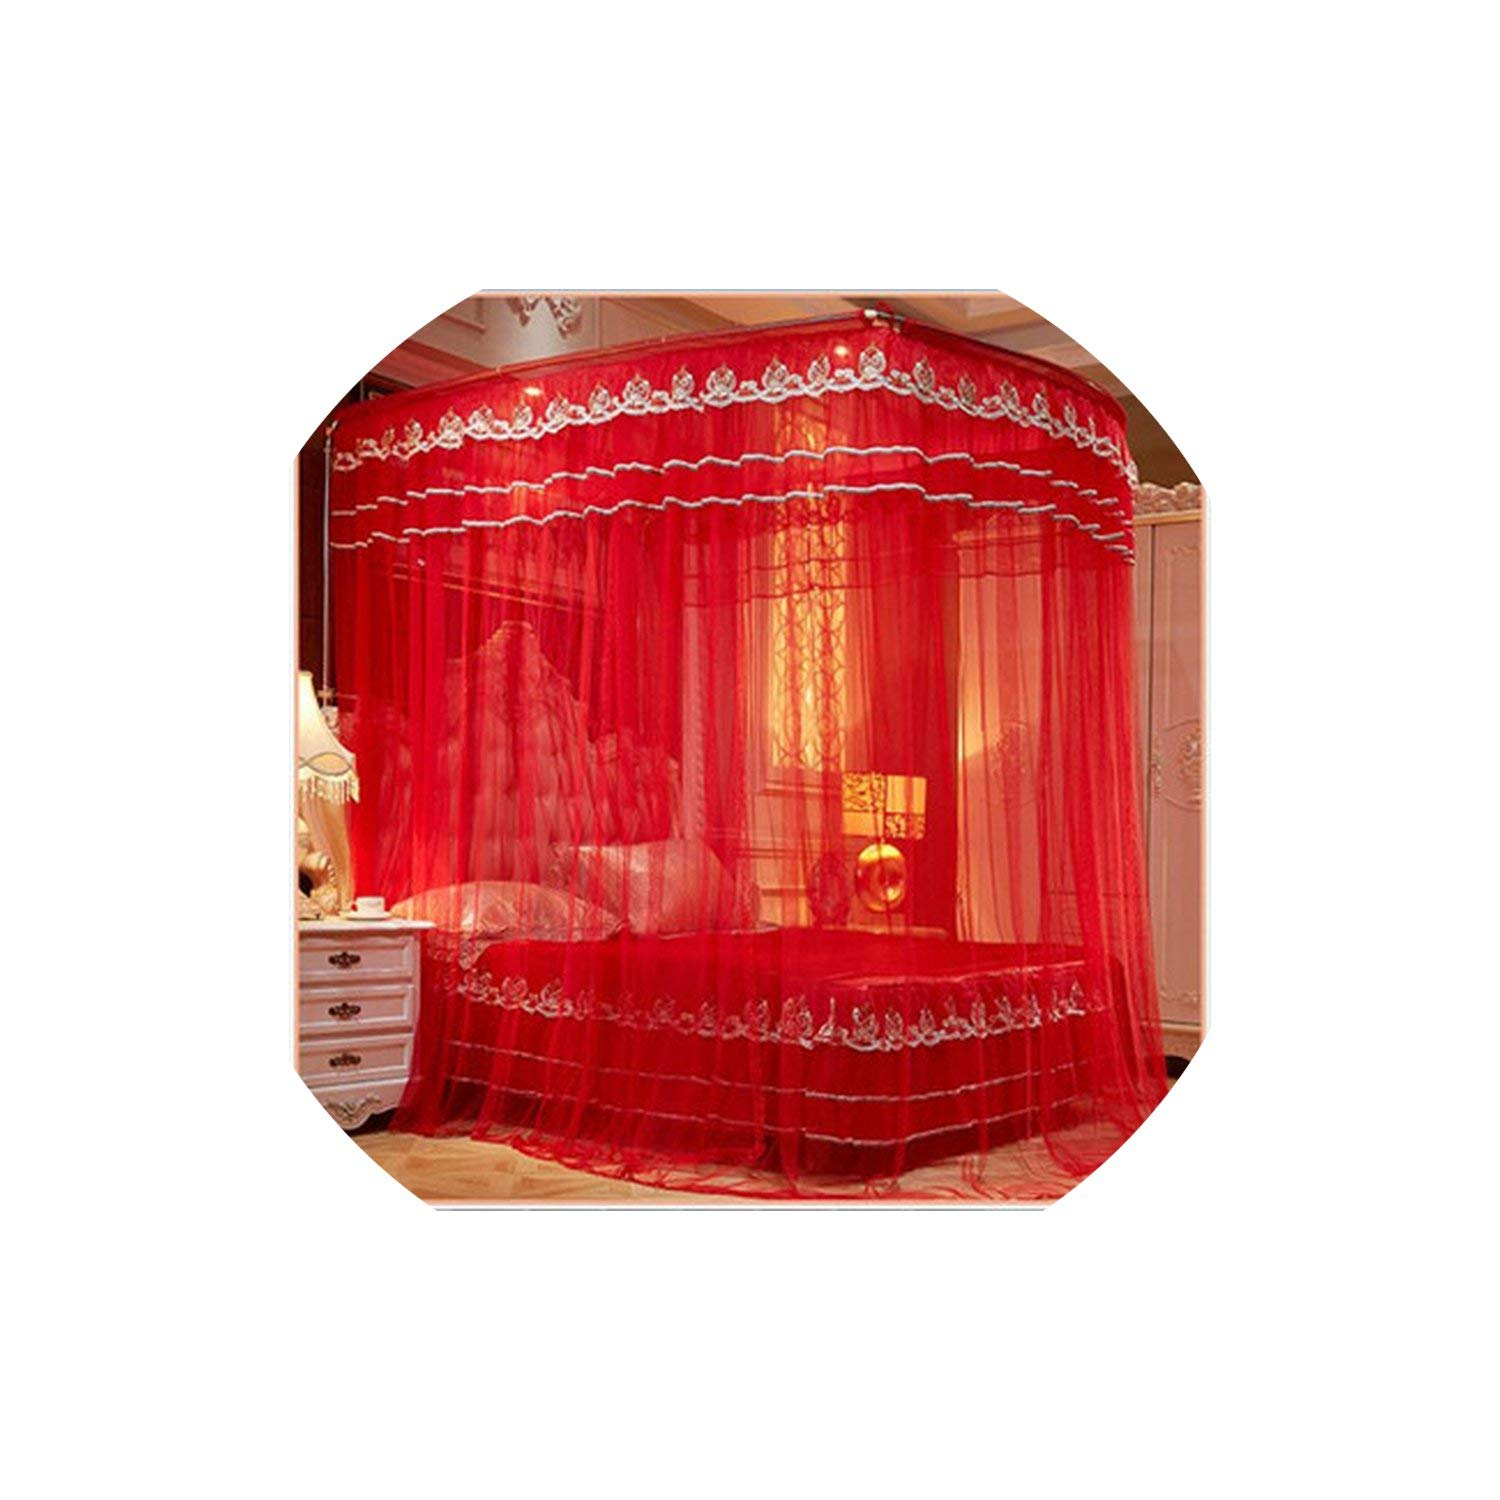 Fishing Rod Retractable Three Door Palace Mosquito Net Floor Standing Anti Mosquito Wedding Nets,Wedding Red Color,1.8Mwx2Mlx2.1Mh by special shine-shop mosquito net (Image #1)